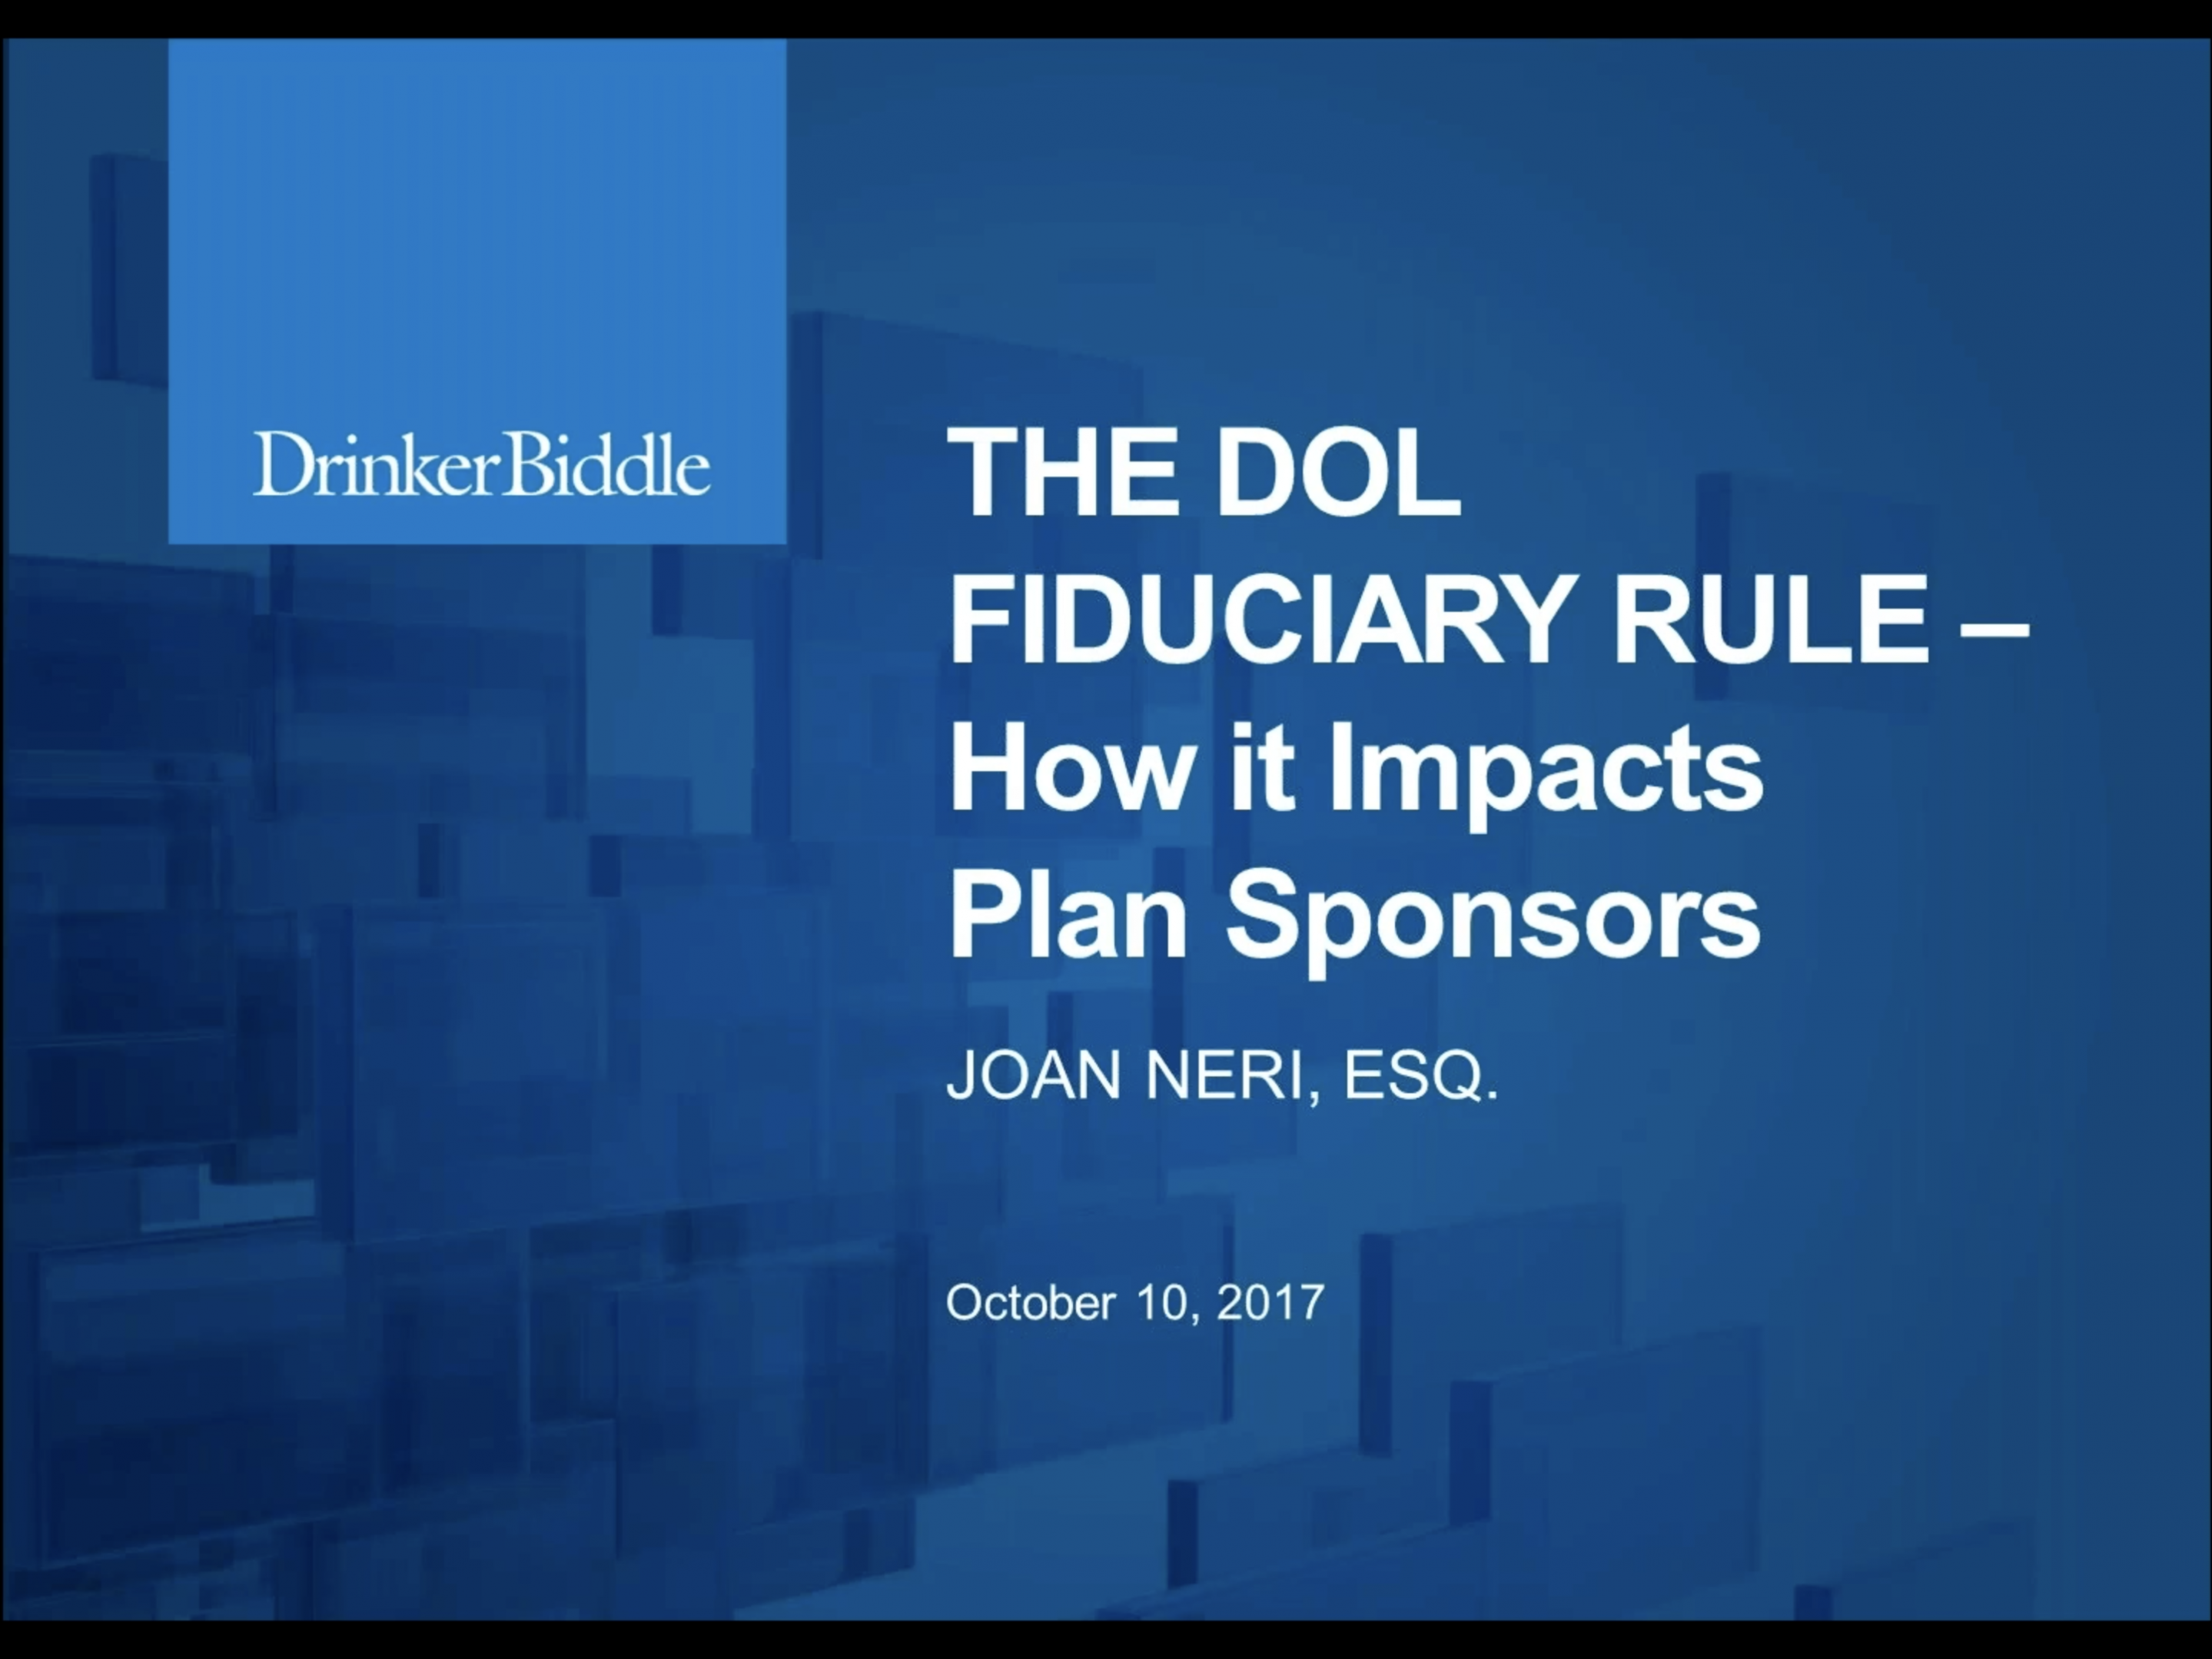 The DOL Fiduciary Rule: How It Impacts Plan Sponsors